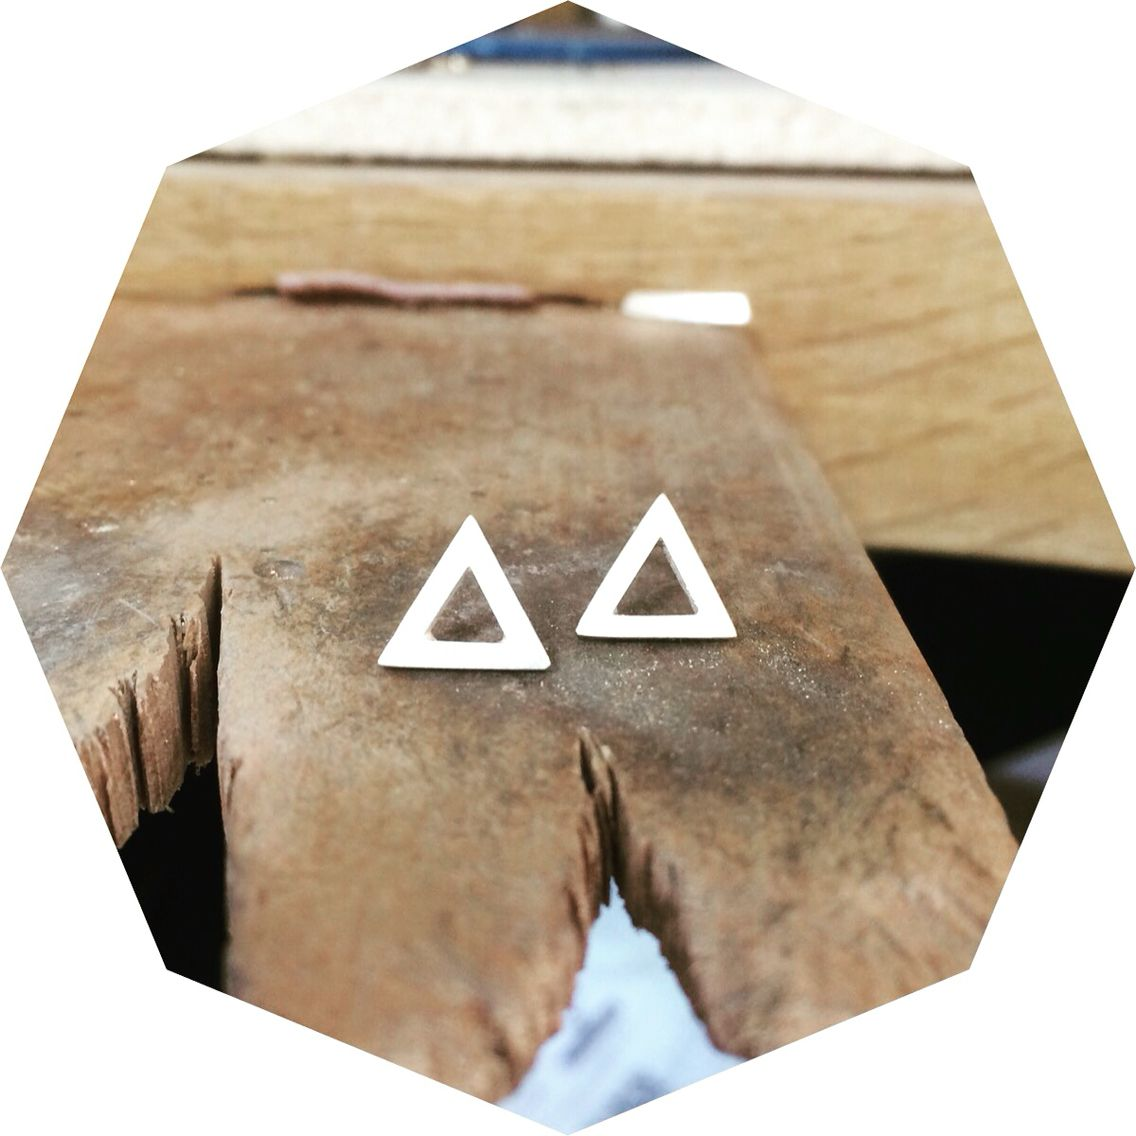 Geometric triangle studs. Handmade by Emma Turpin from silver.